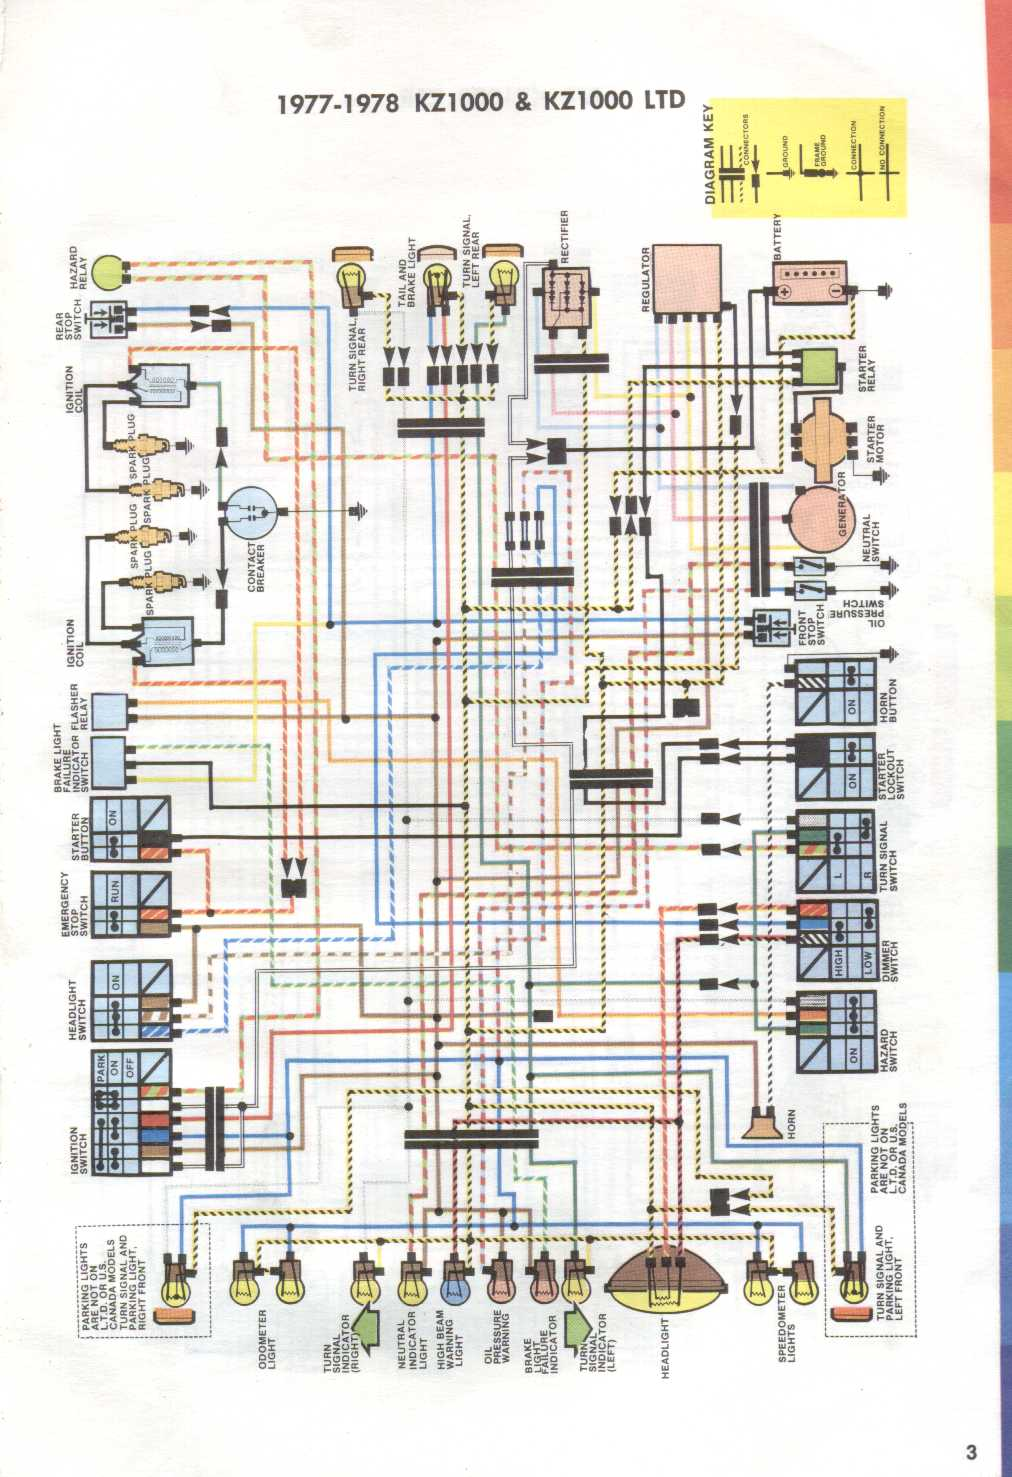 Wiring Diagram for 1977 – 1978 Kawasaki KZ1000 and KZ1000LTD ... on